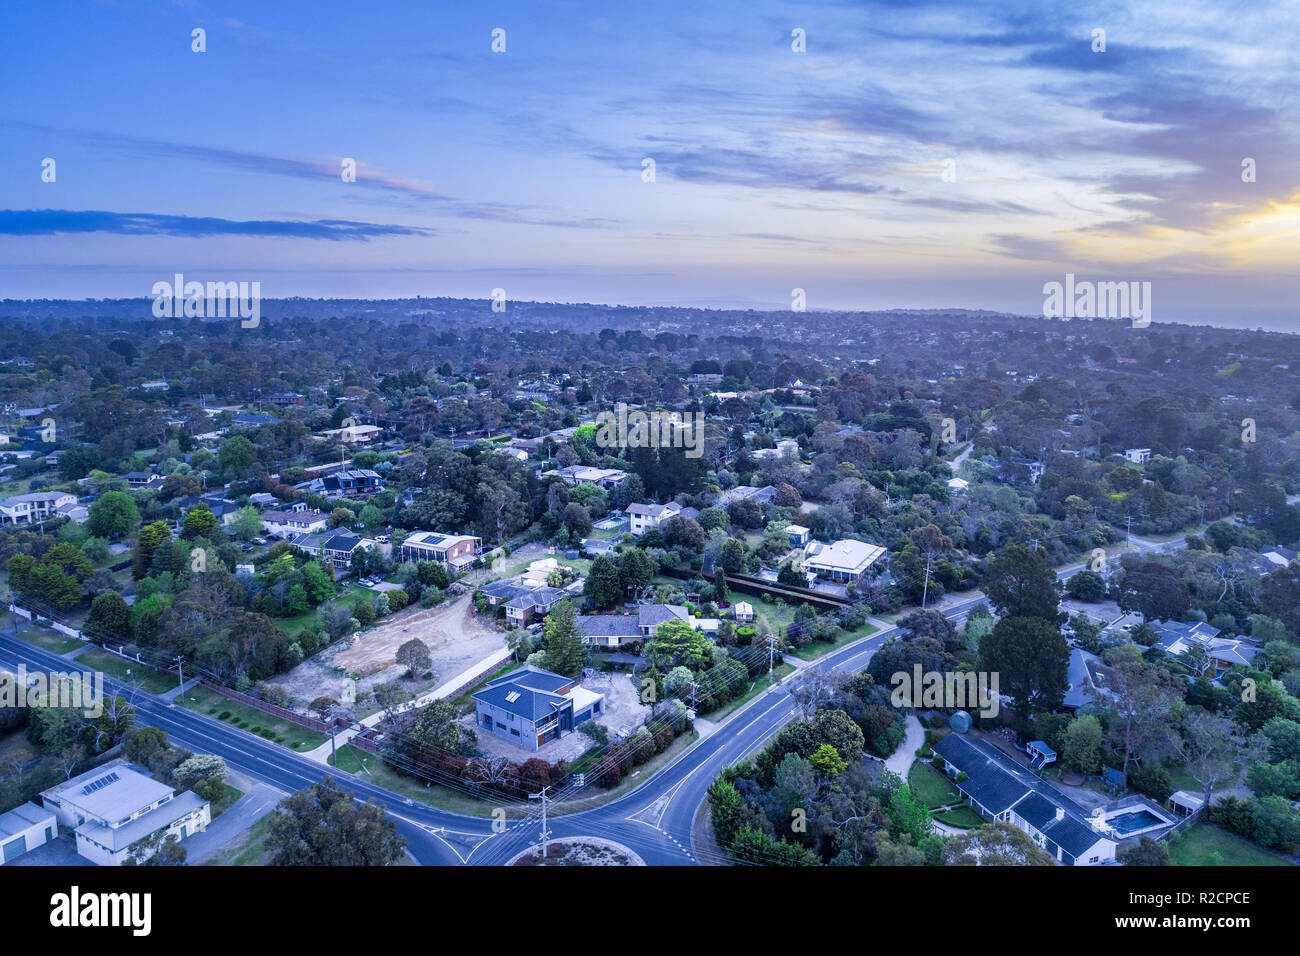 Aerial view of Frankston South, Victoria, Australia - Stock Image